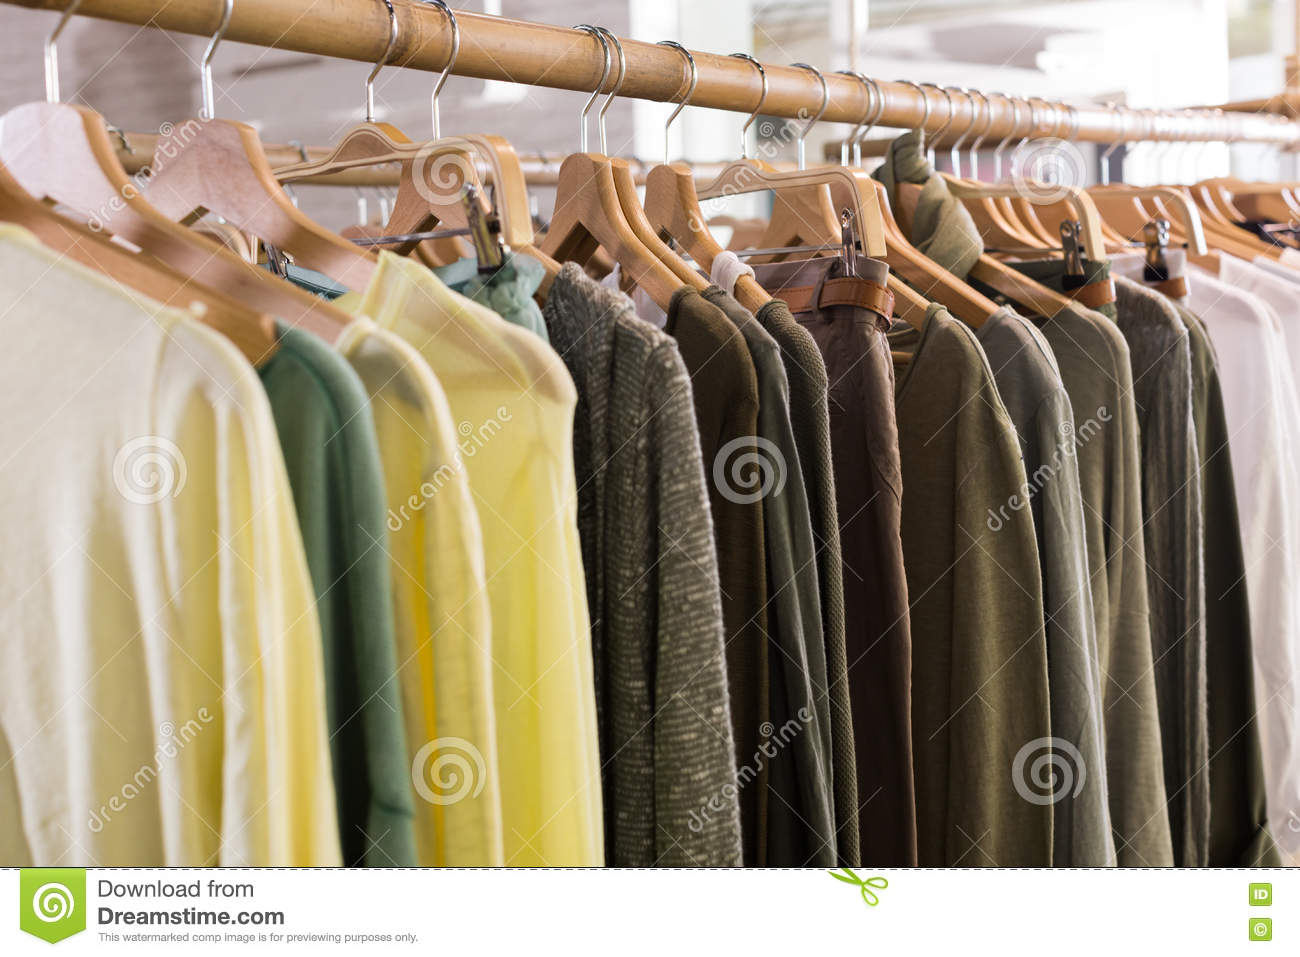 Download Hosiery Clothing In Apparel Store Interior Stock Photo Image Of Choice Assortment